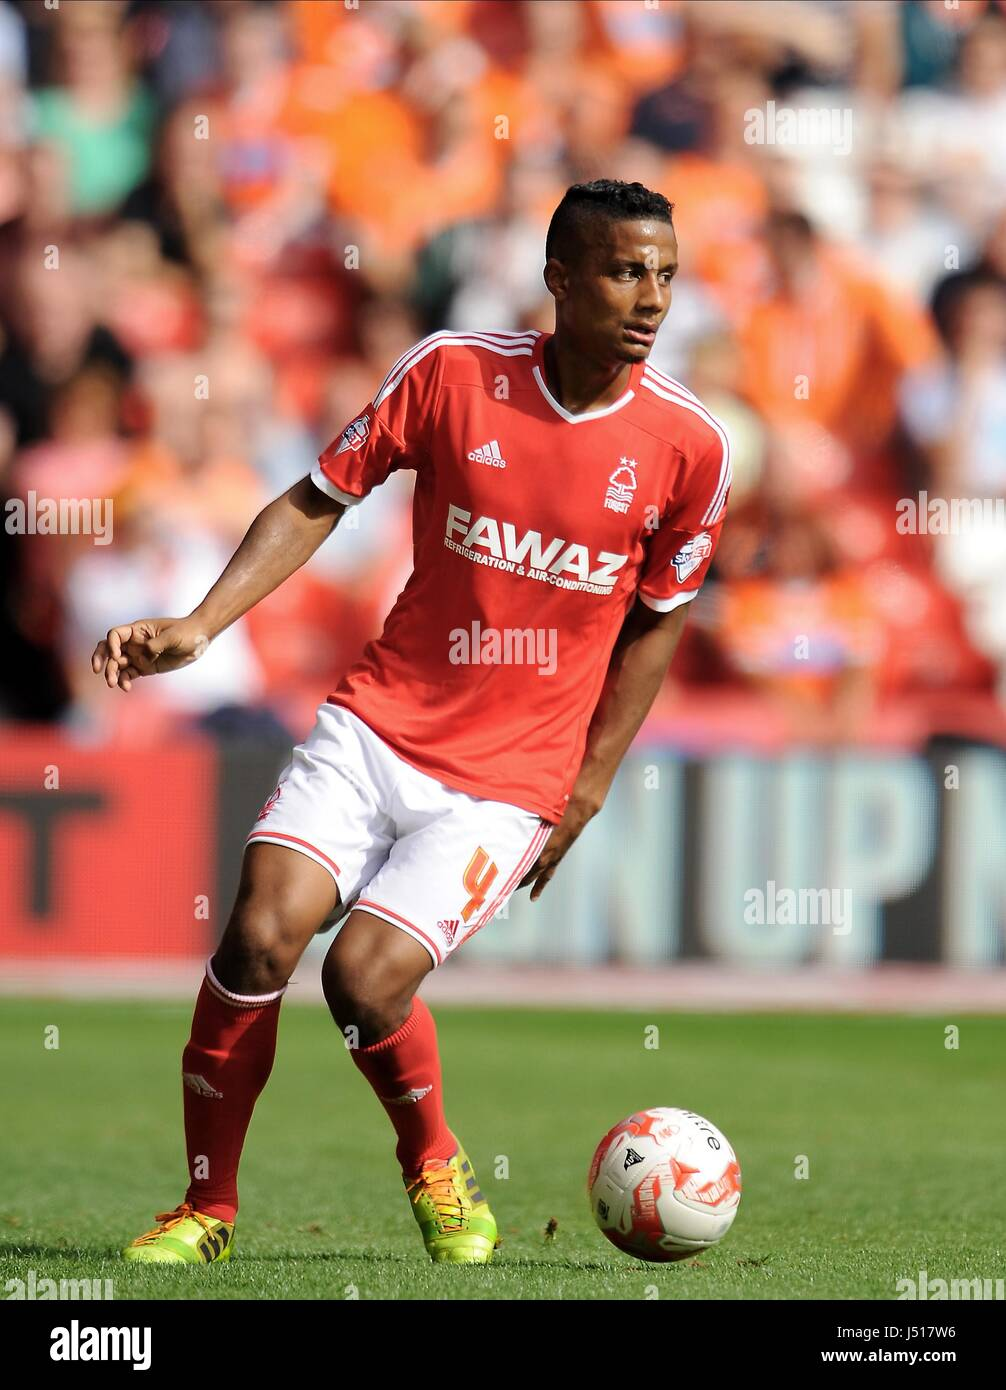 MICHAEL MANCIENNE NOTTINGHAM FOREST FC THE CITY GROUND NOTTINGHAM ENGLAND  09 August 2014 - Stock Image f091145802354